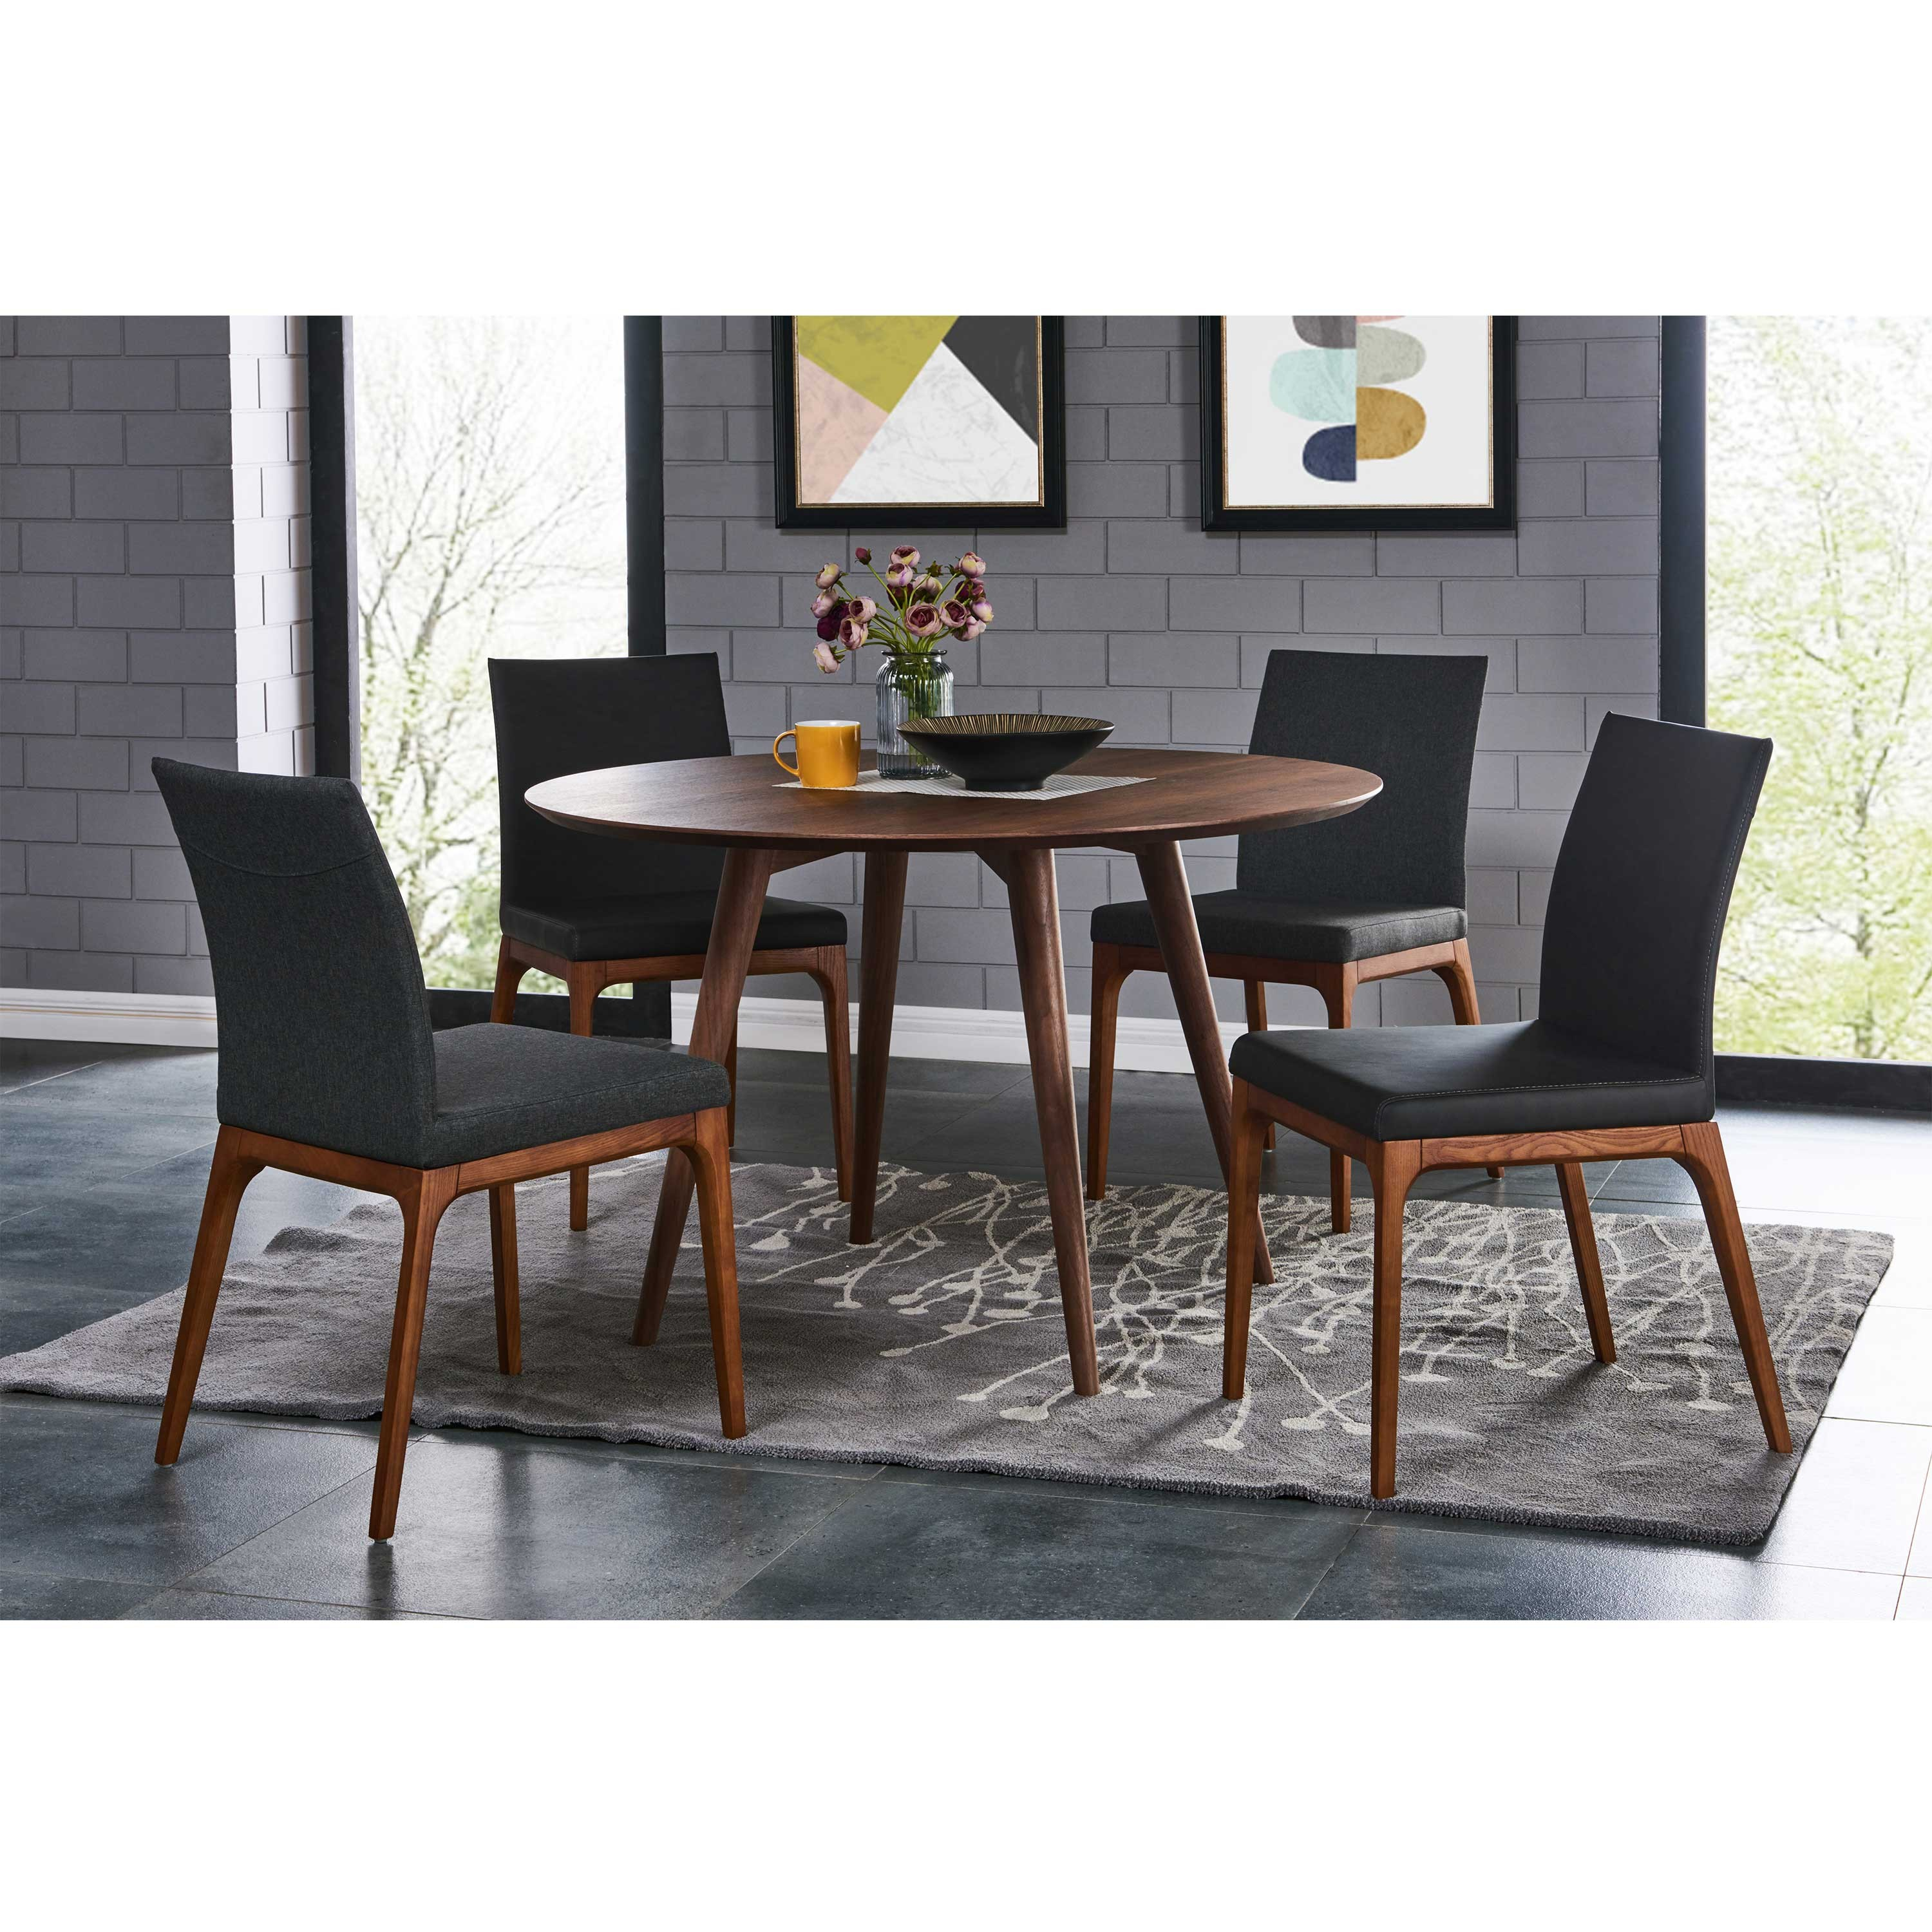 Bradshaw Round Dining Table, Walnut/441847